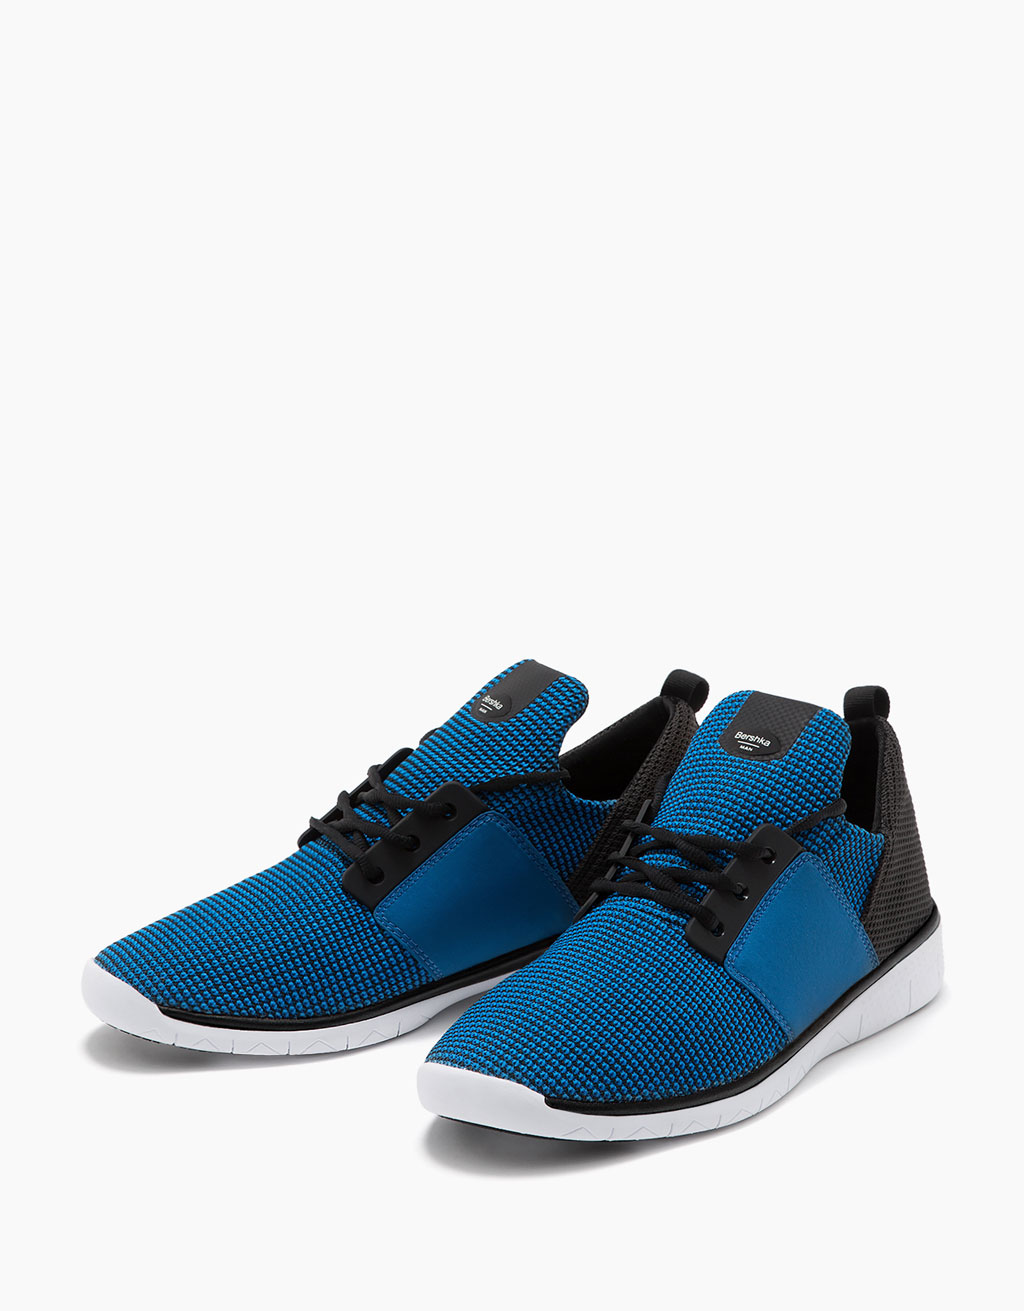 Men's technical fabric sneakers